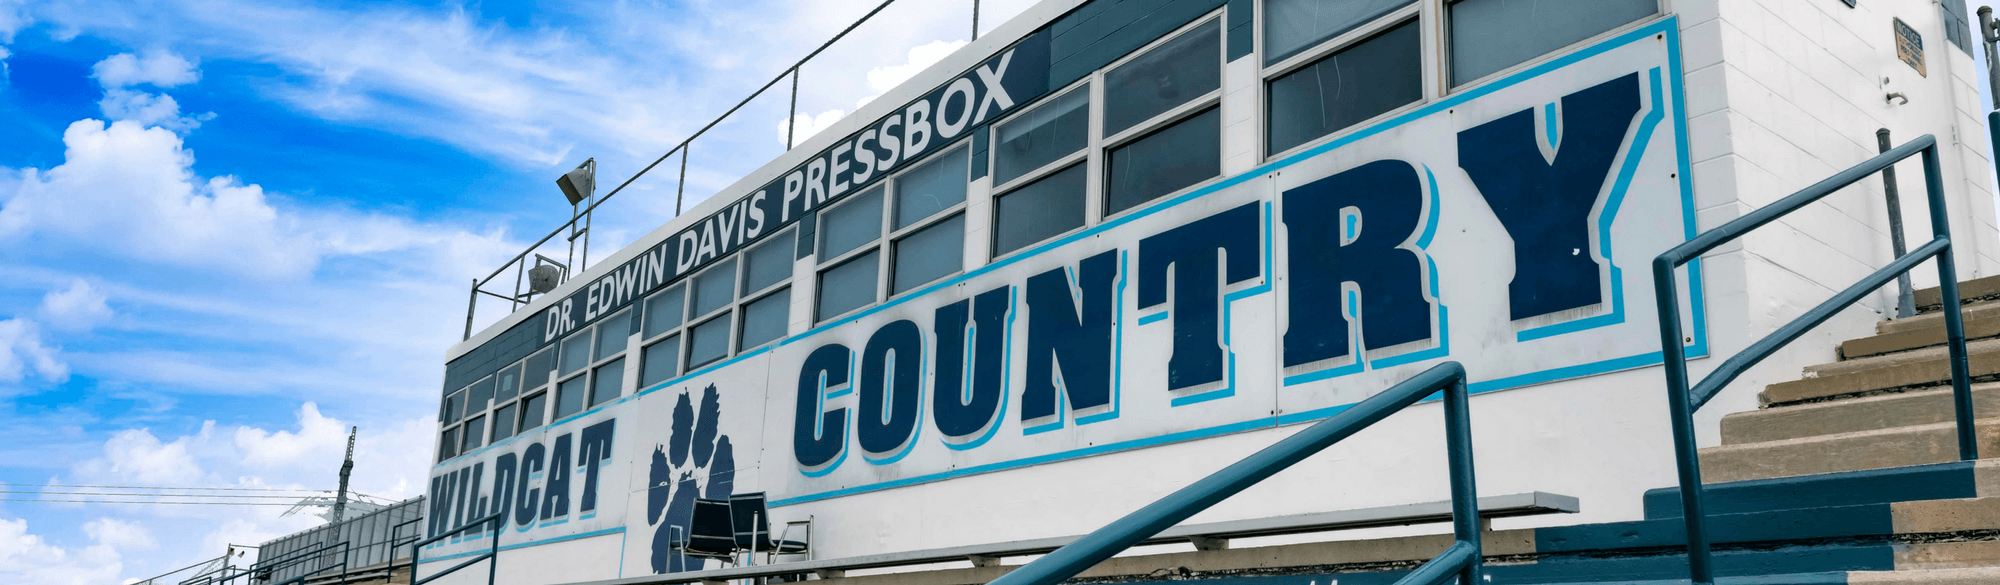 Dr. Edwin Davis Pressbox at Chris Gilman Stadium